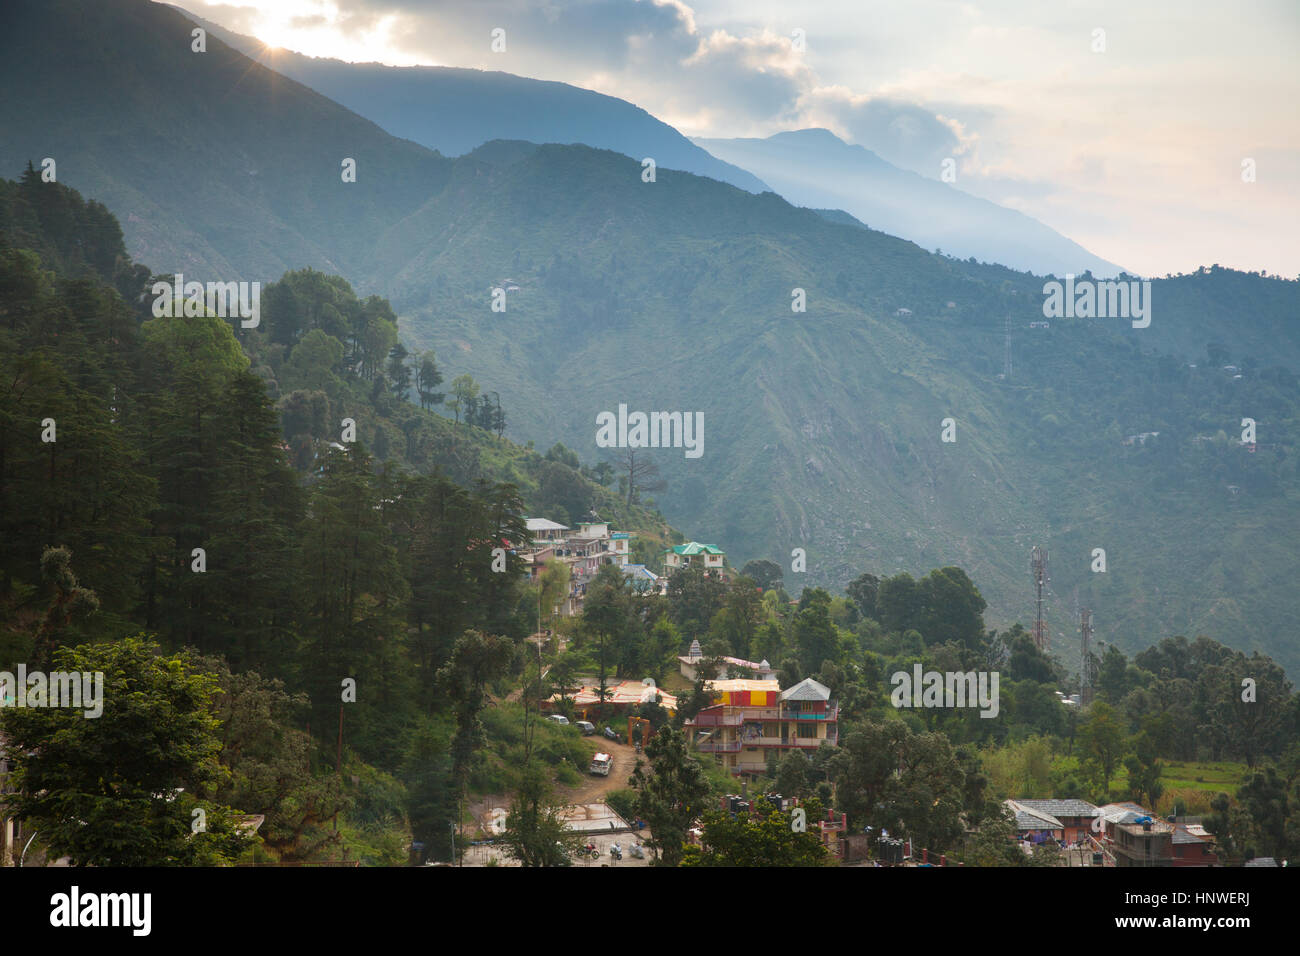 Sunrise over McLeodGanj, the residence town of Dalai Lama, Dharamsala, India. - Stock Image